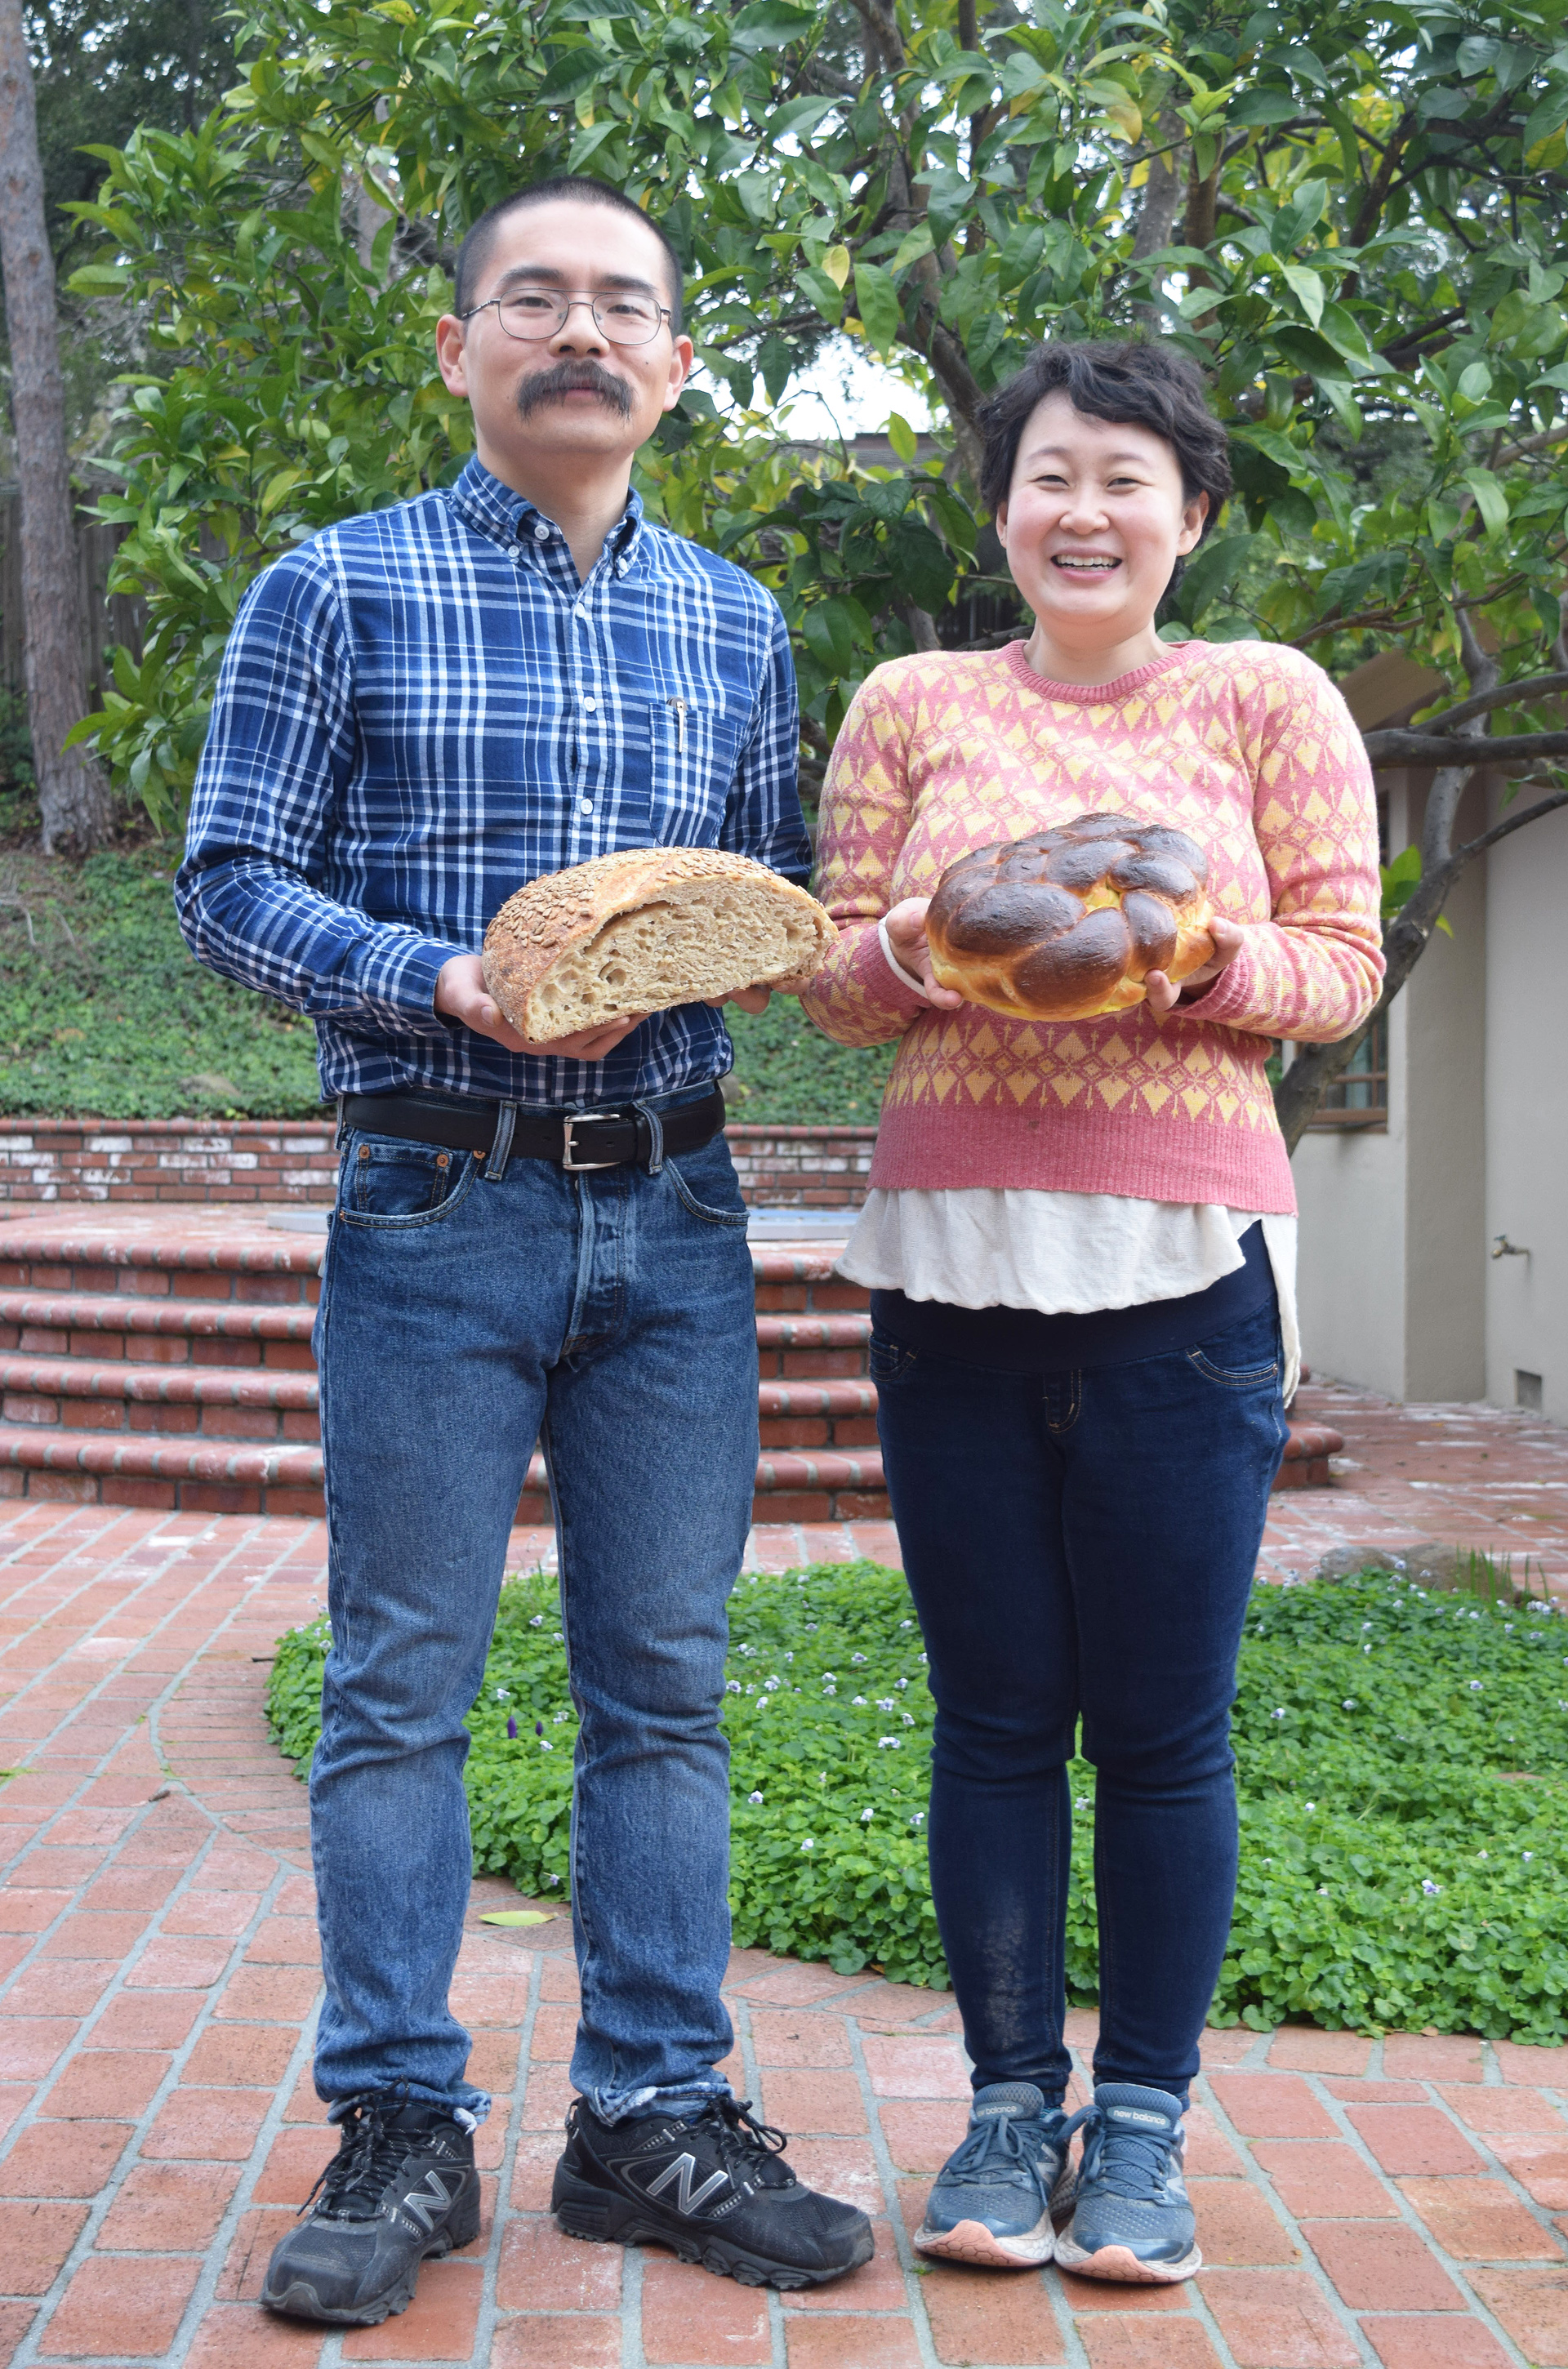 Yan Xu, left, and Tian Mayimin were pals at Harvard and got back together last year as partners in Little Sky Bakery.